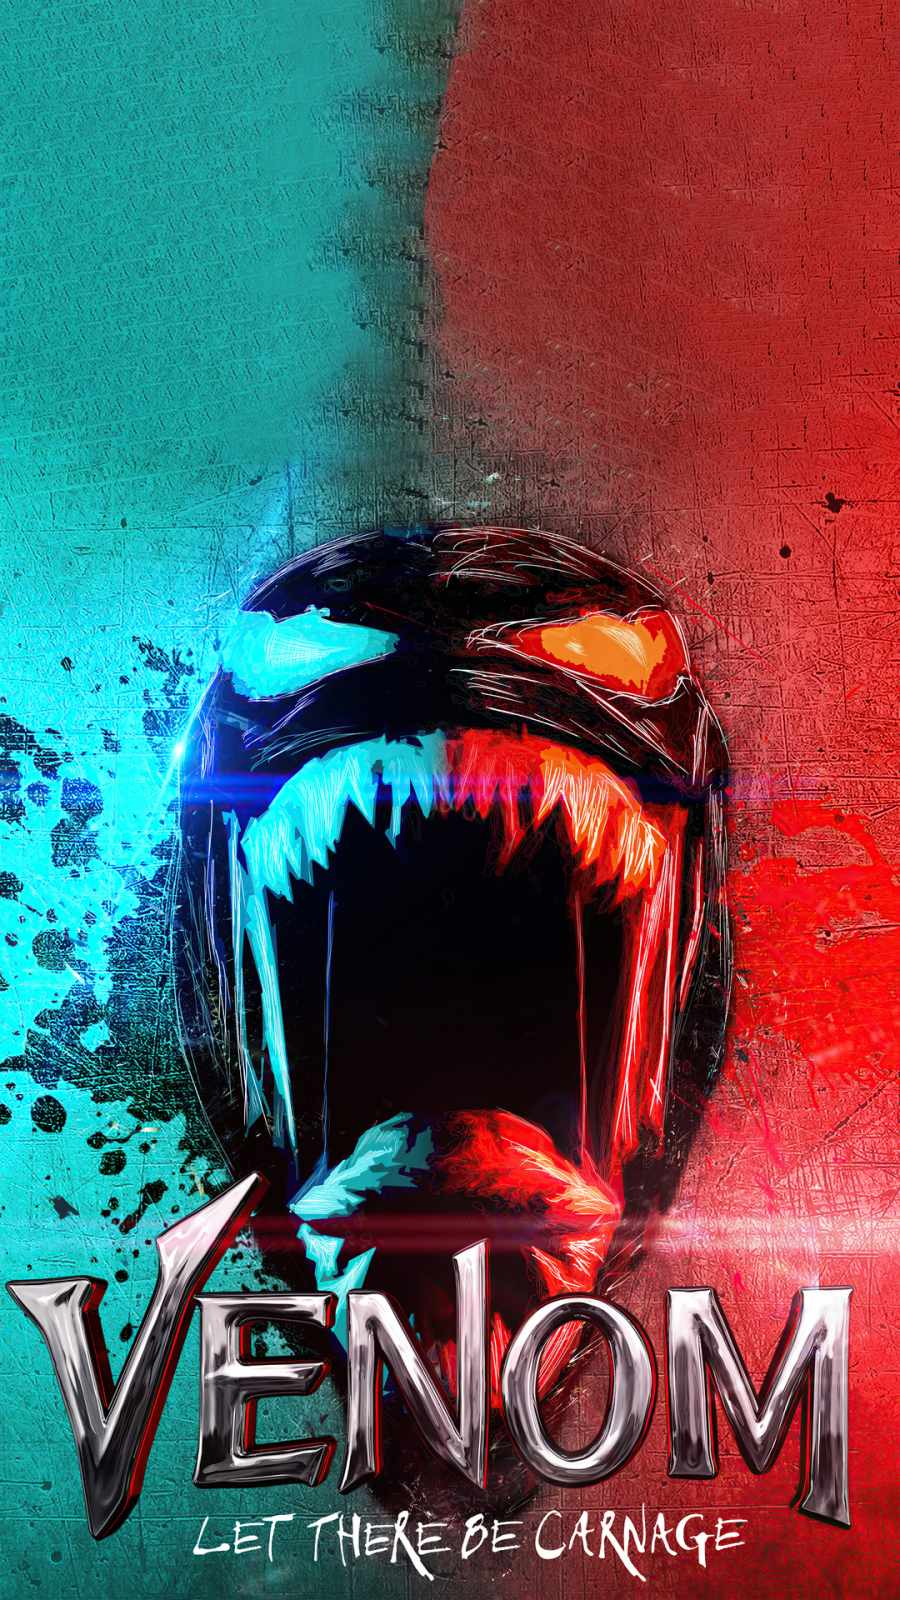 2021 venom let there be carnage